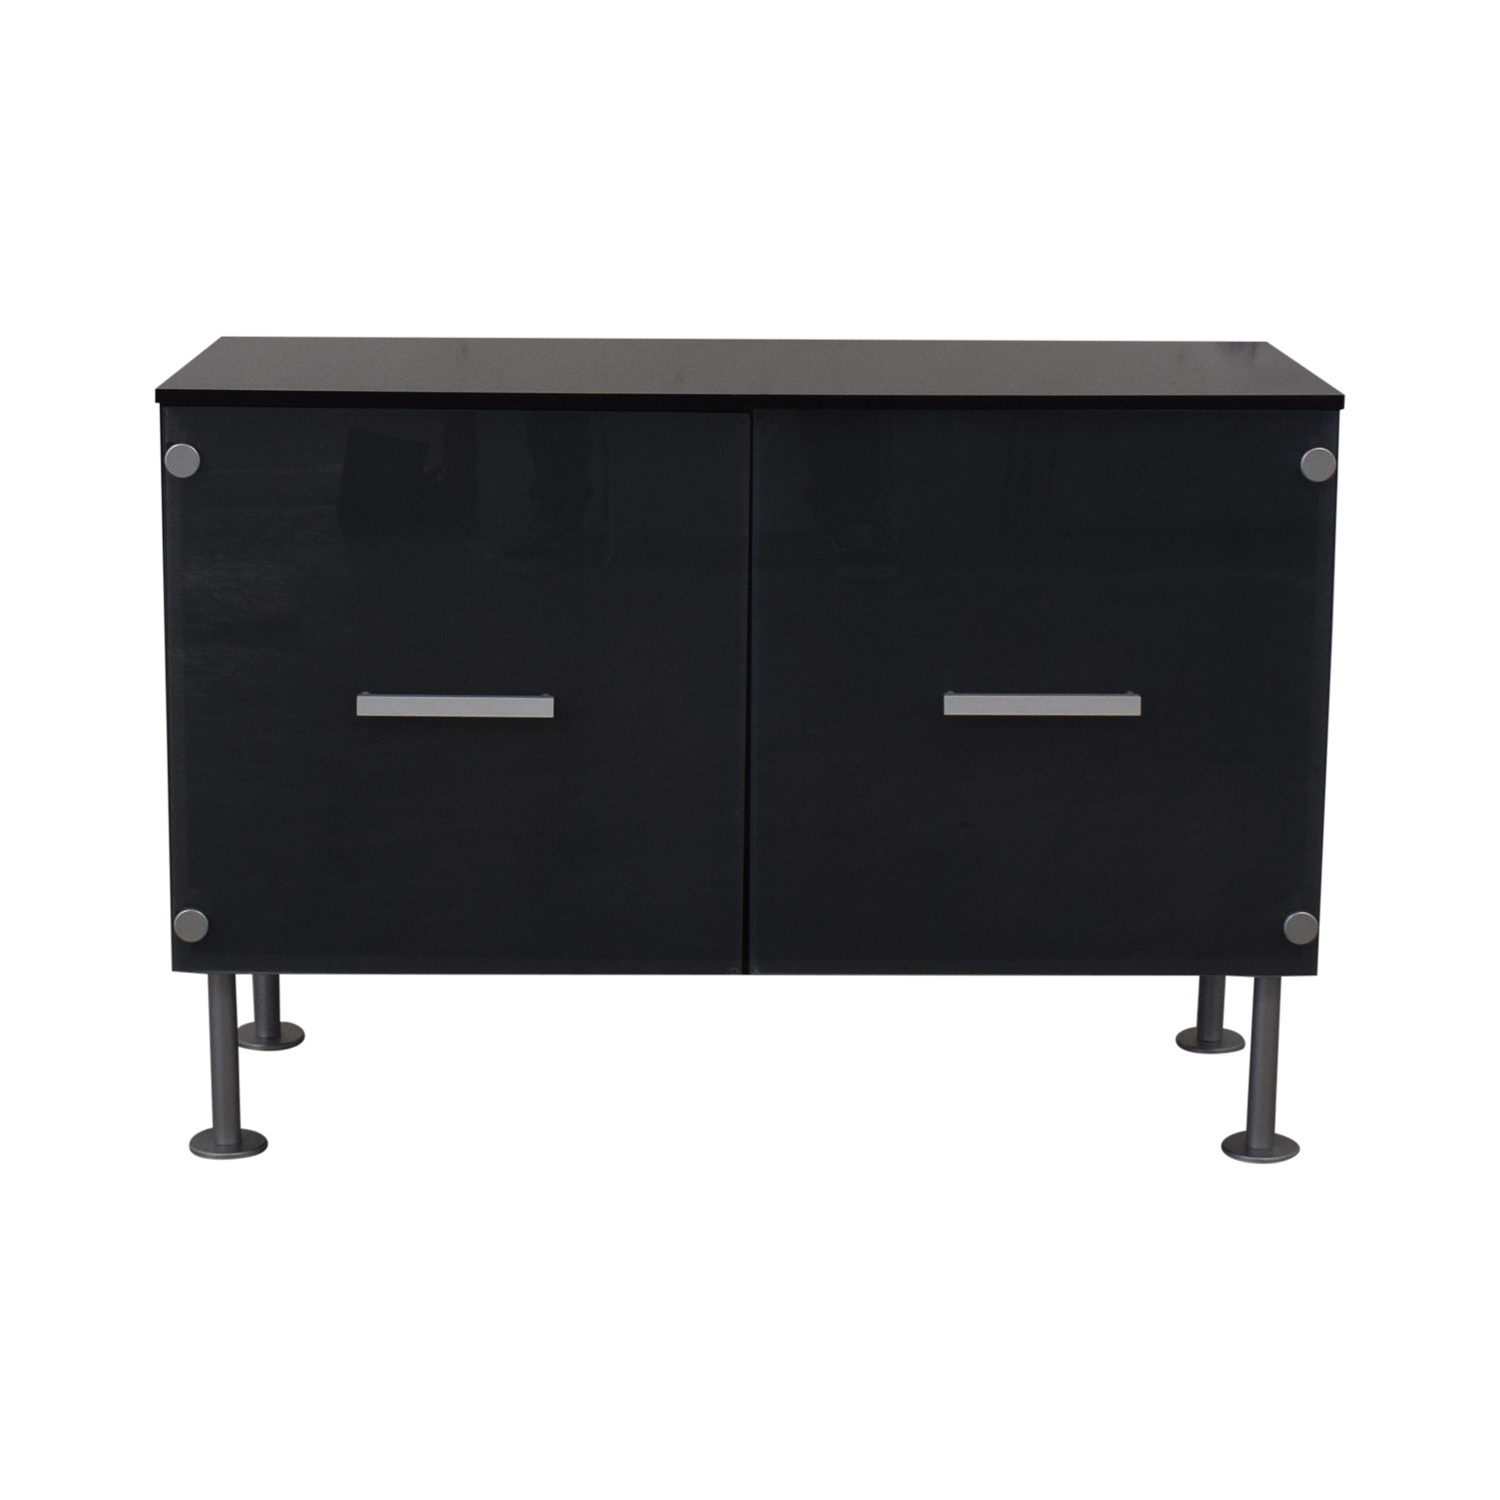 BoConcept BoConcept Media Console with Frost Doors on sale